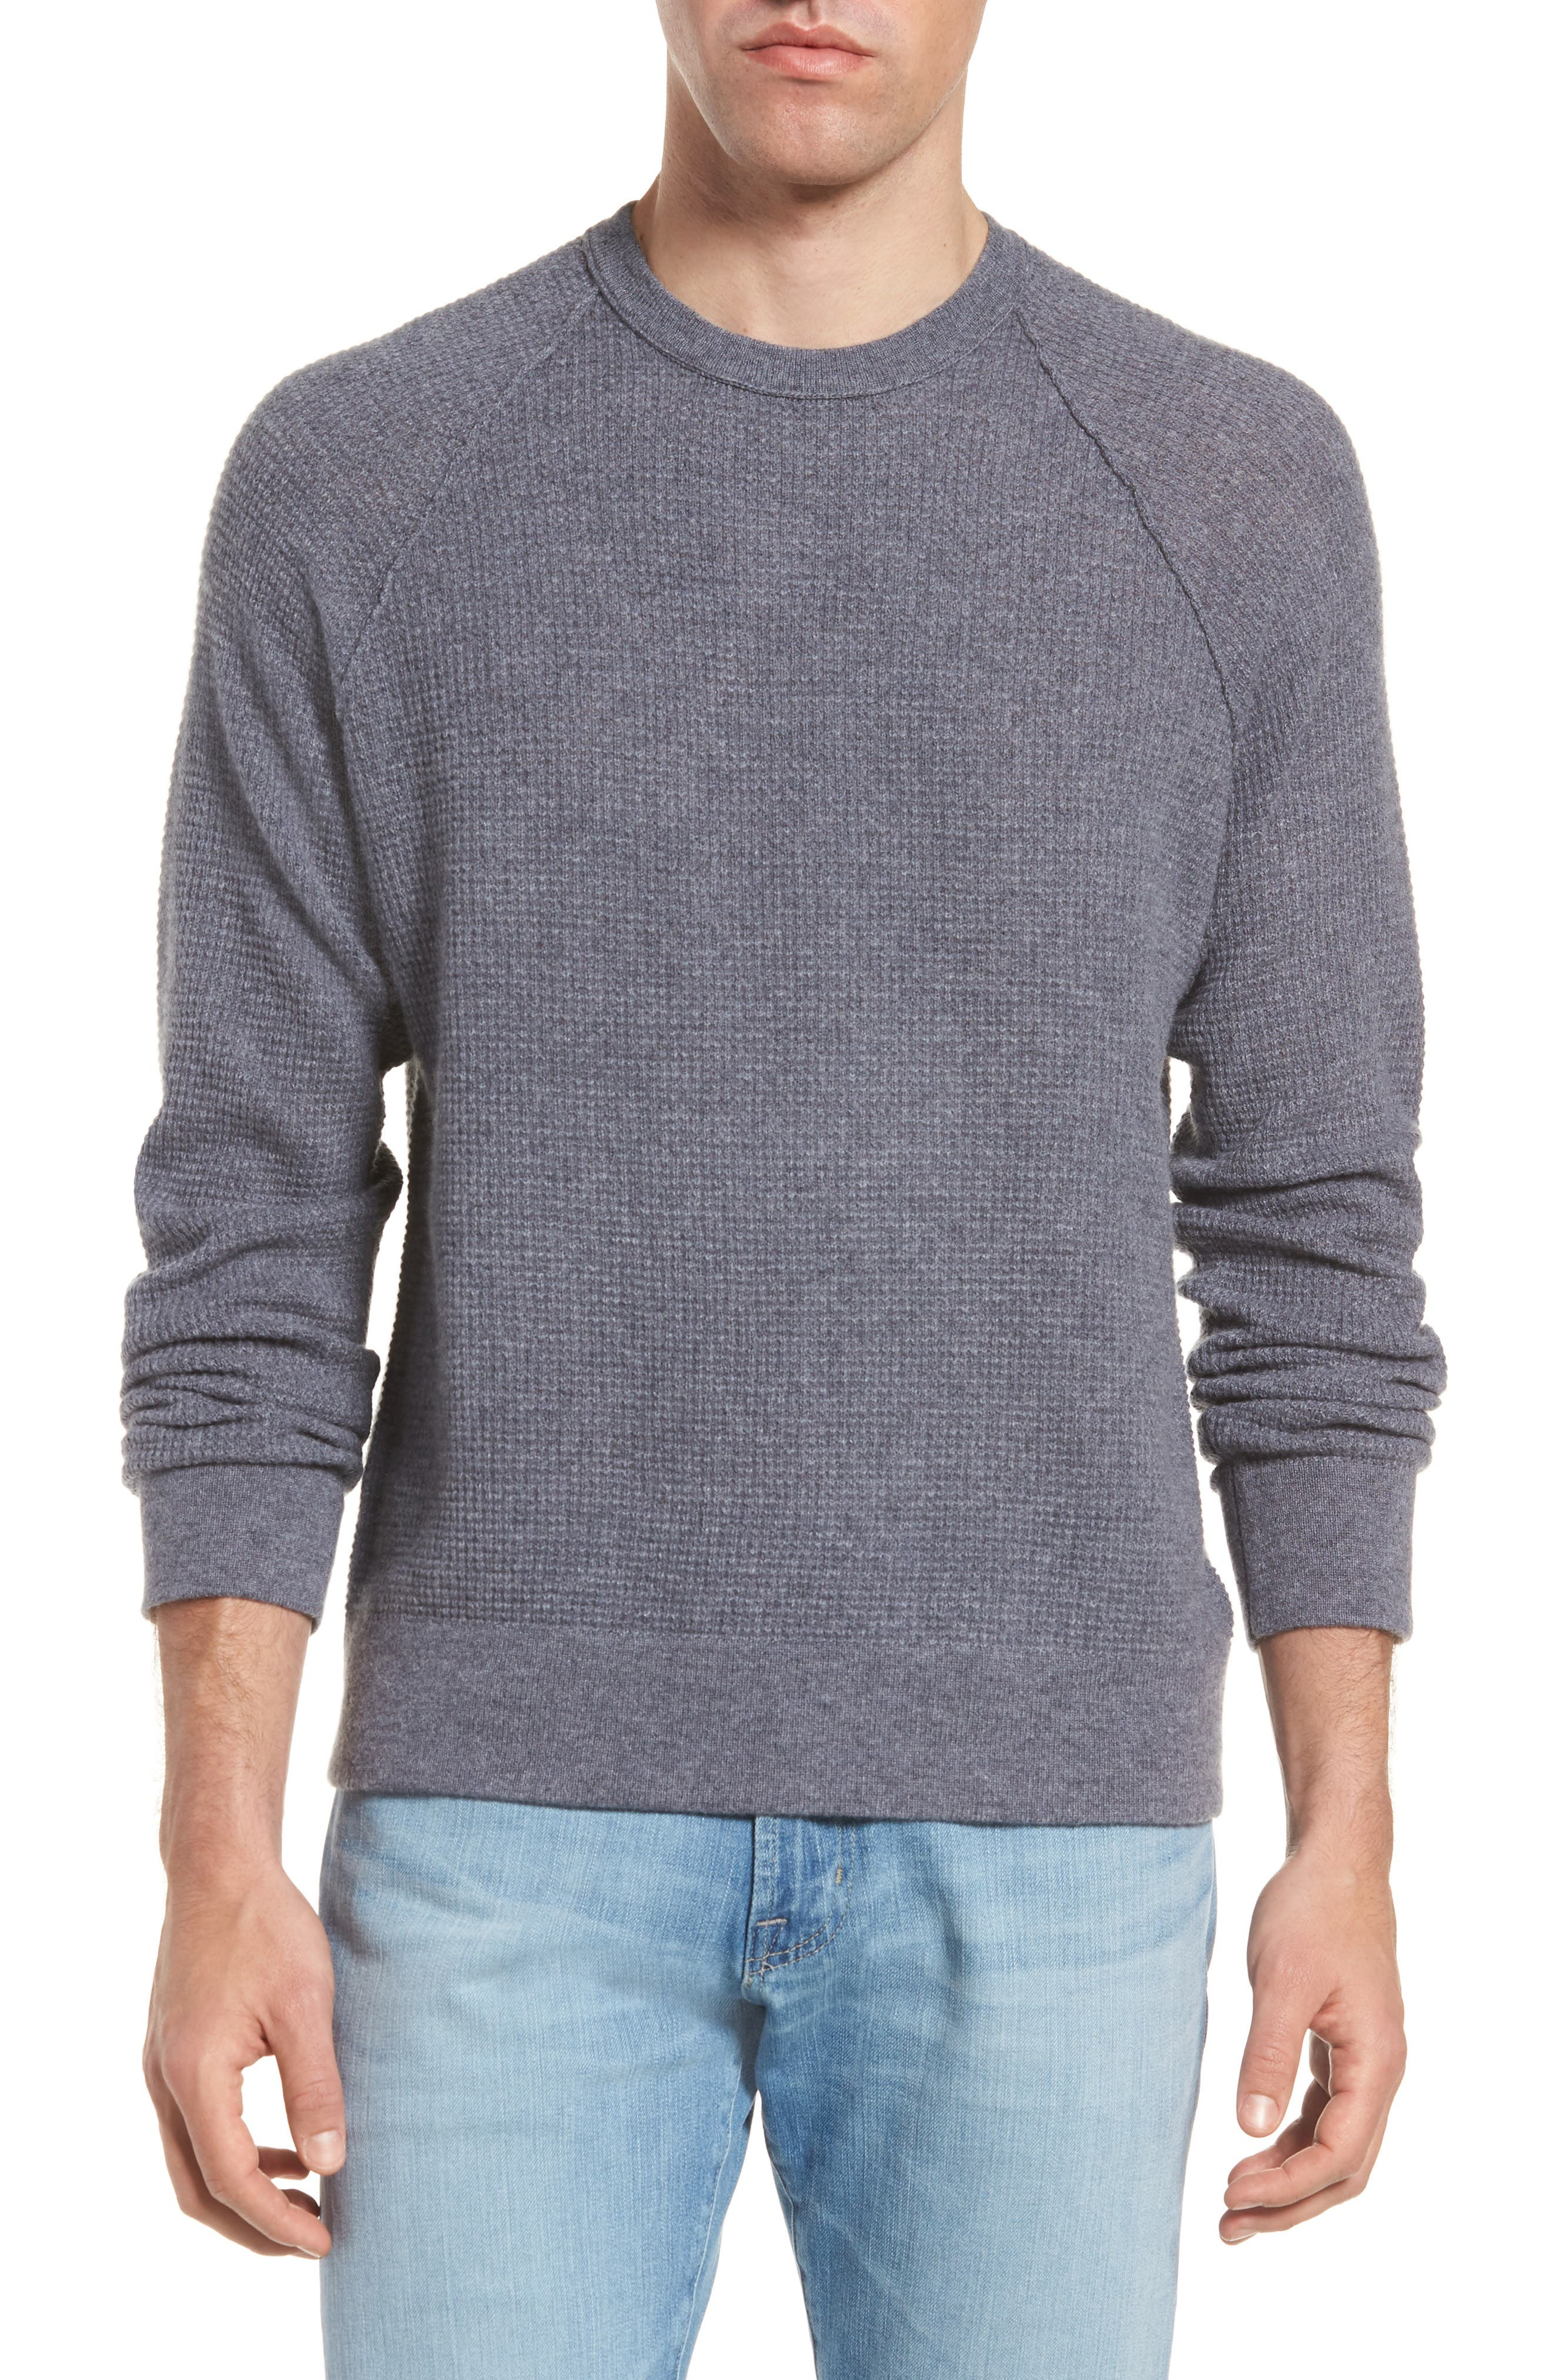 Thermal Cashmere Sweater,                         Main,                         color, 077